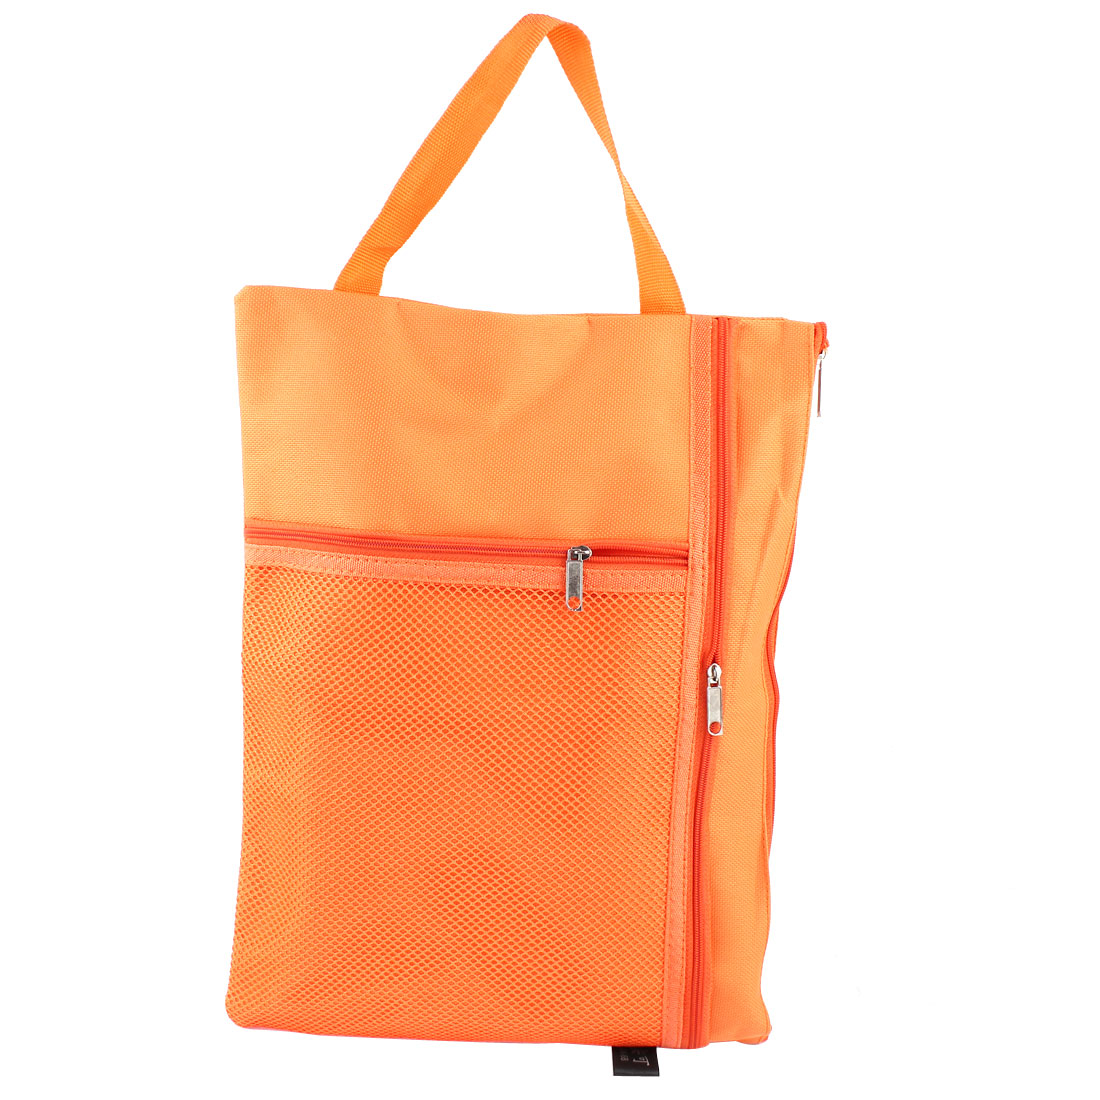 "Orange Nylon Zip Up Water Resistant A4 Paper File Pen Bag Folder 13.4"" x 10"""